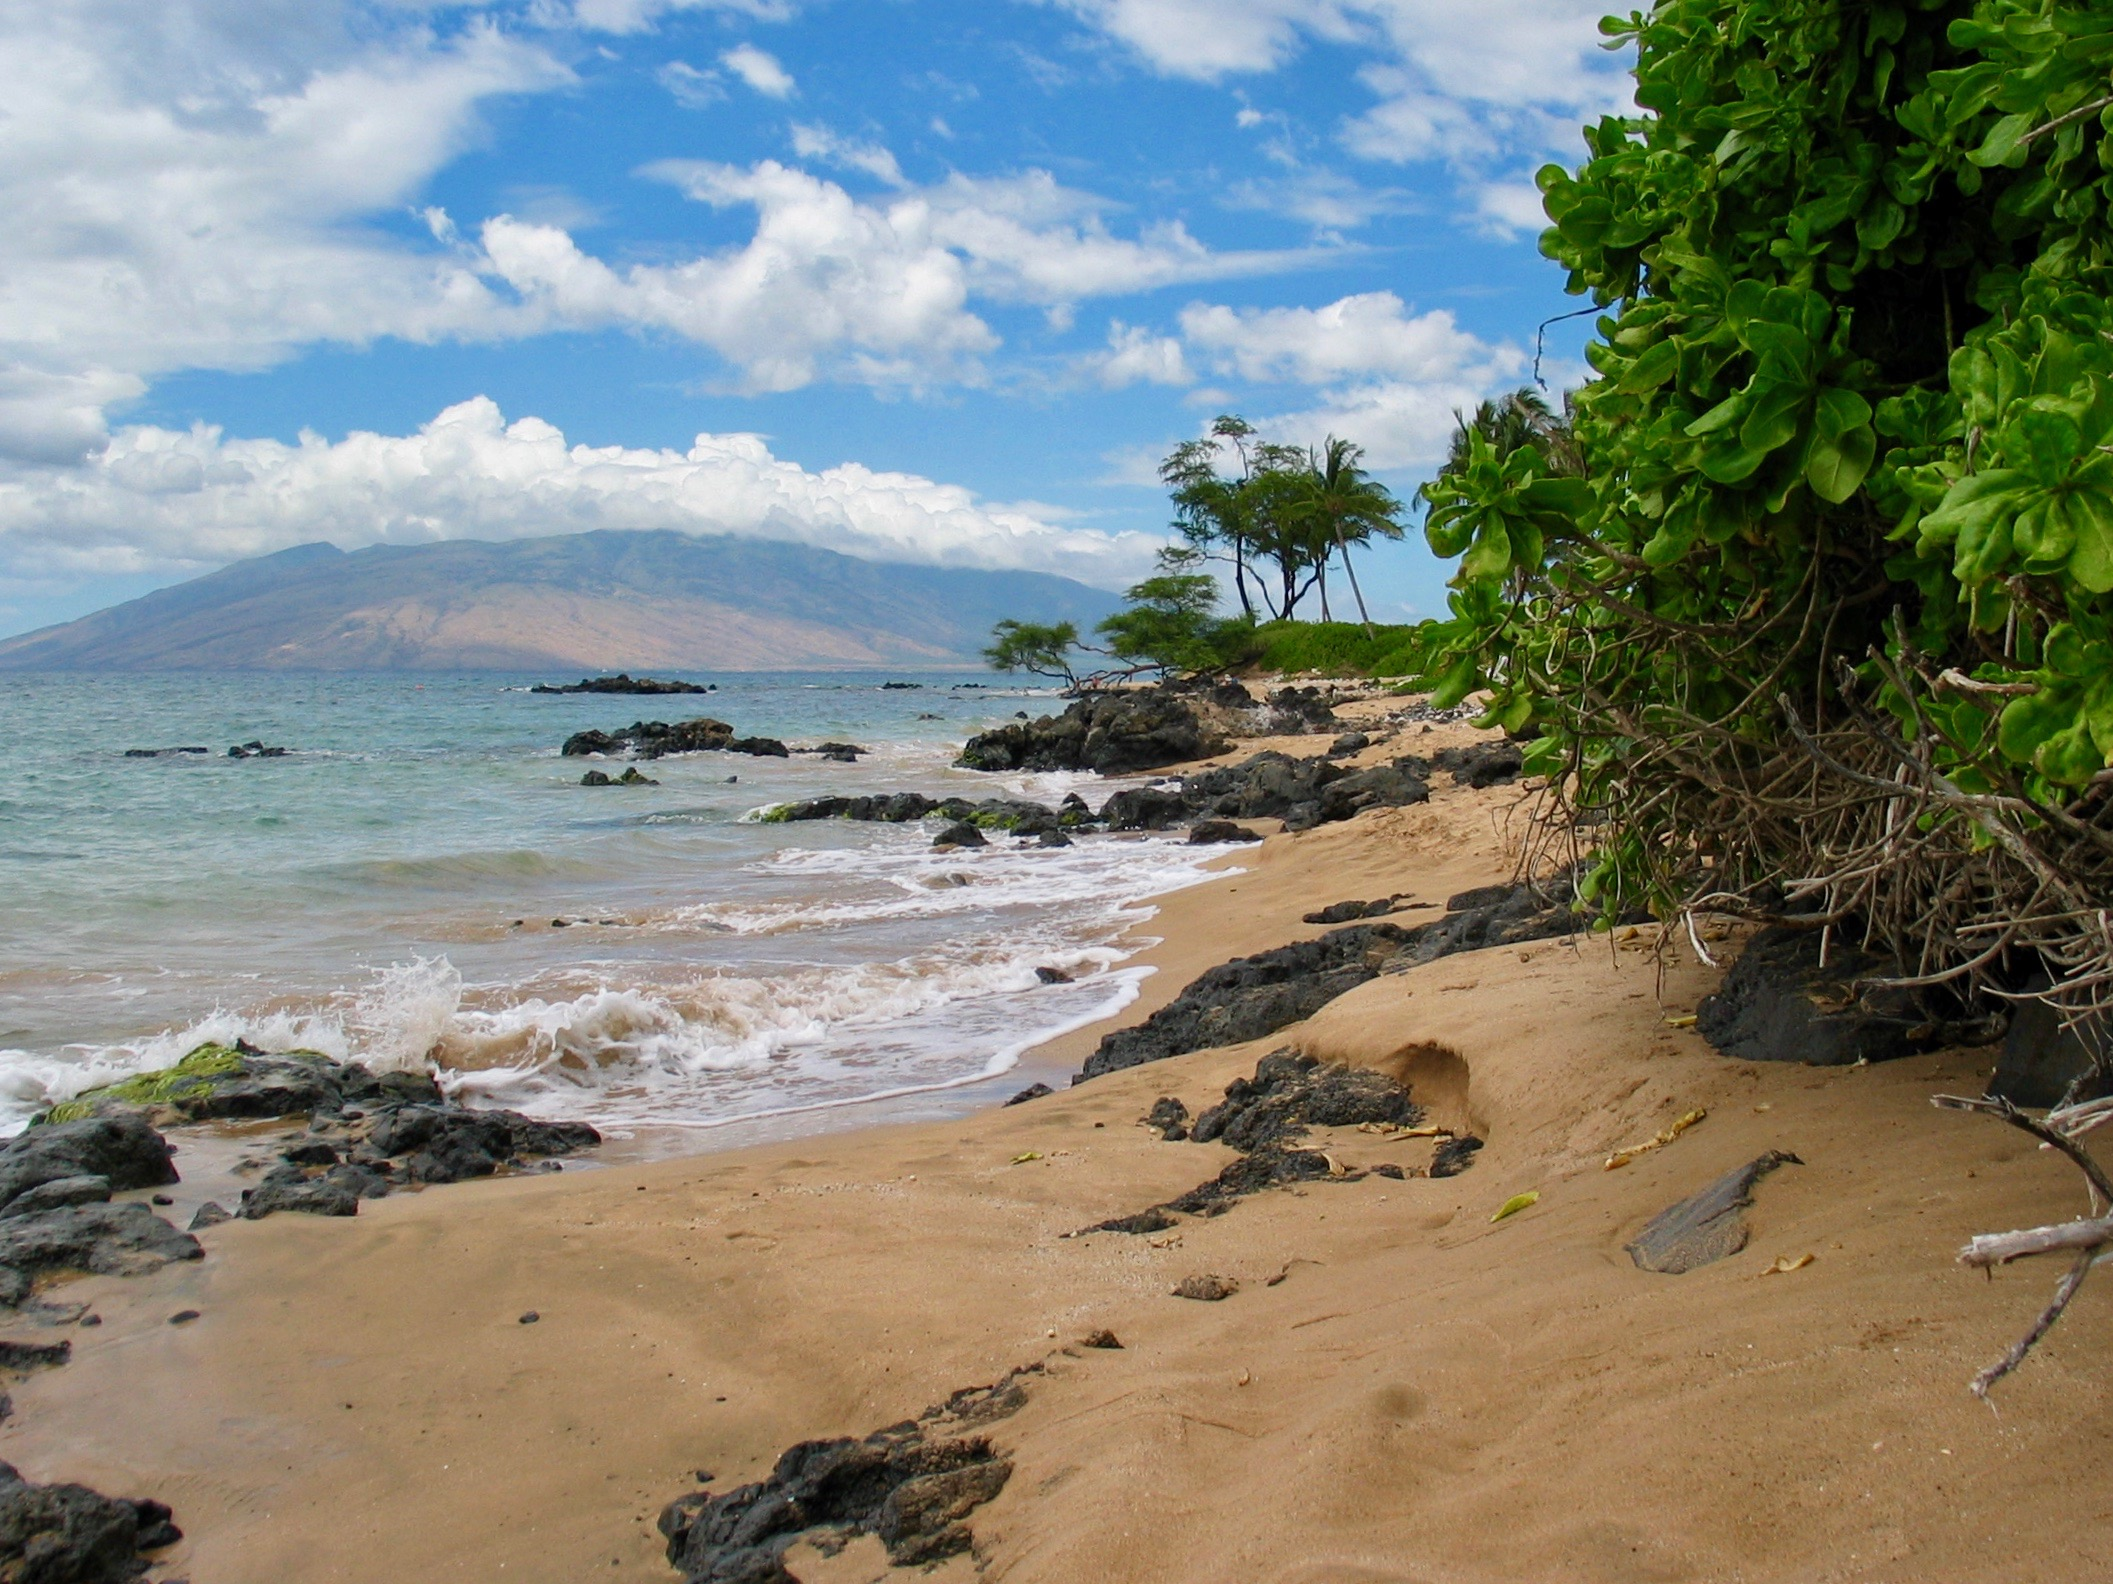 https://upload.wikimedia.org/wikipedia/commons/a/a5/Kihei_coast.jpg